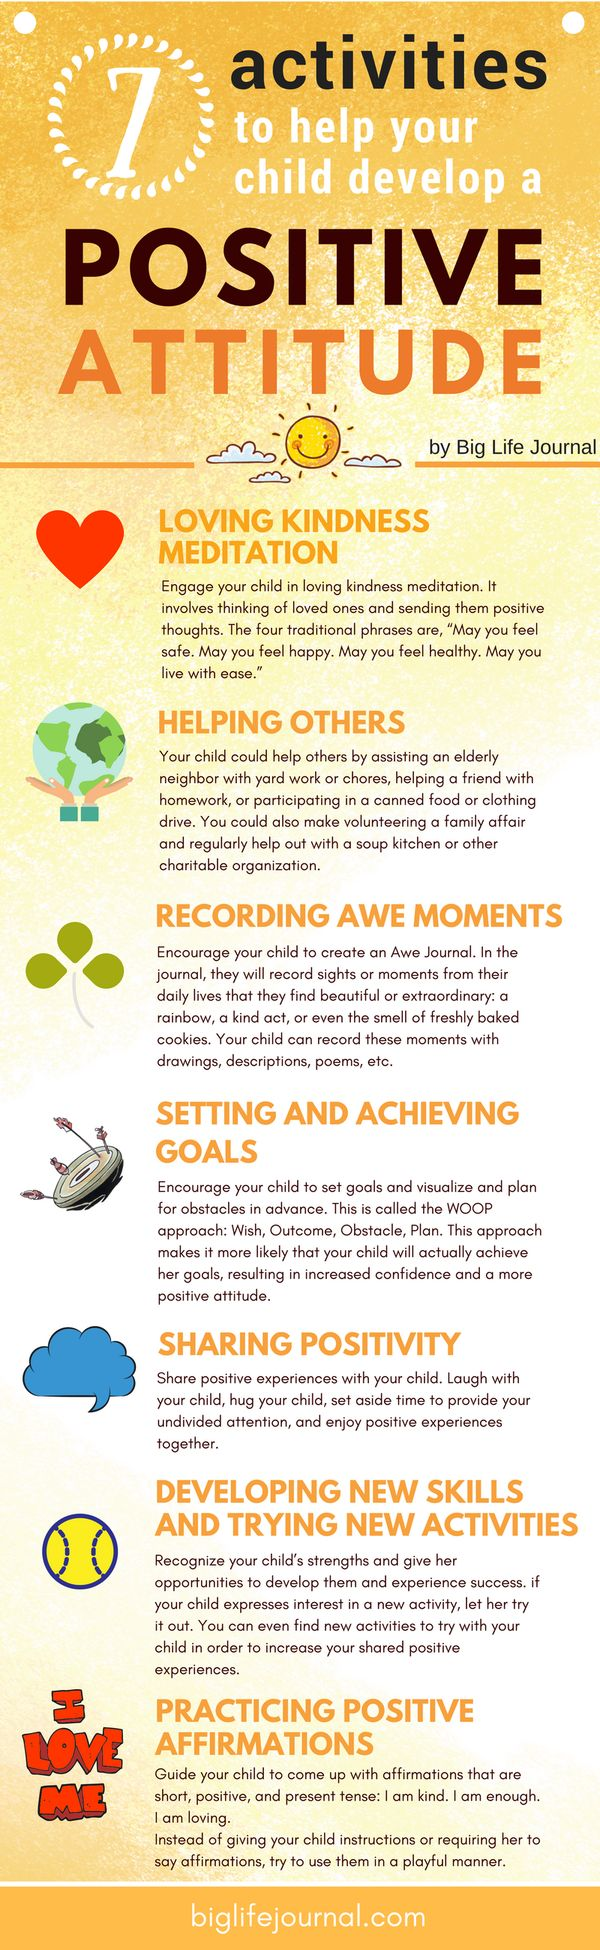 A list of seven highly effective activities (based on research) to help your child develop a positive attitude.